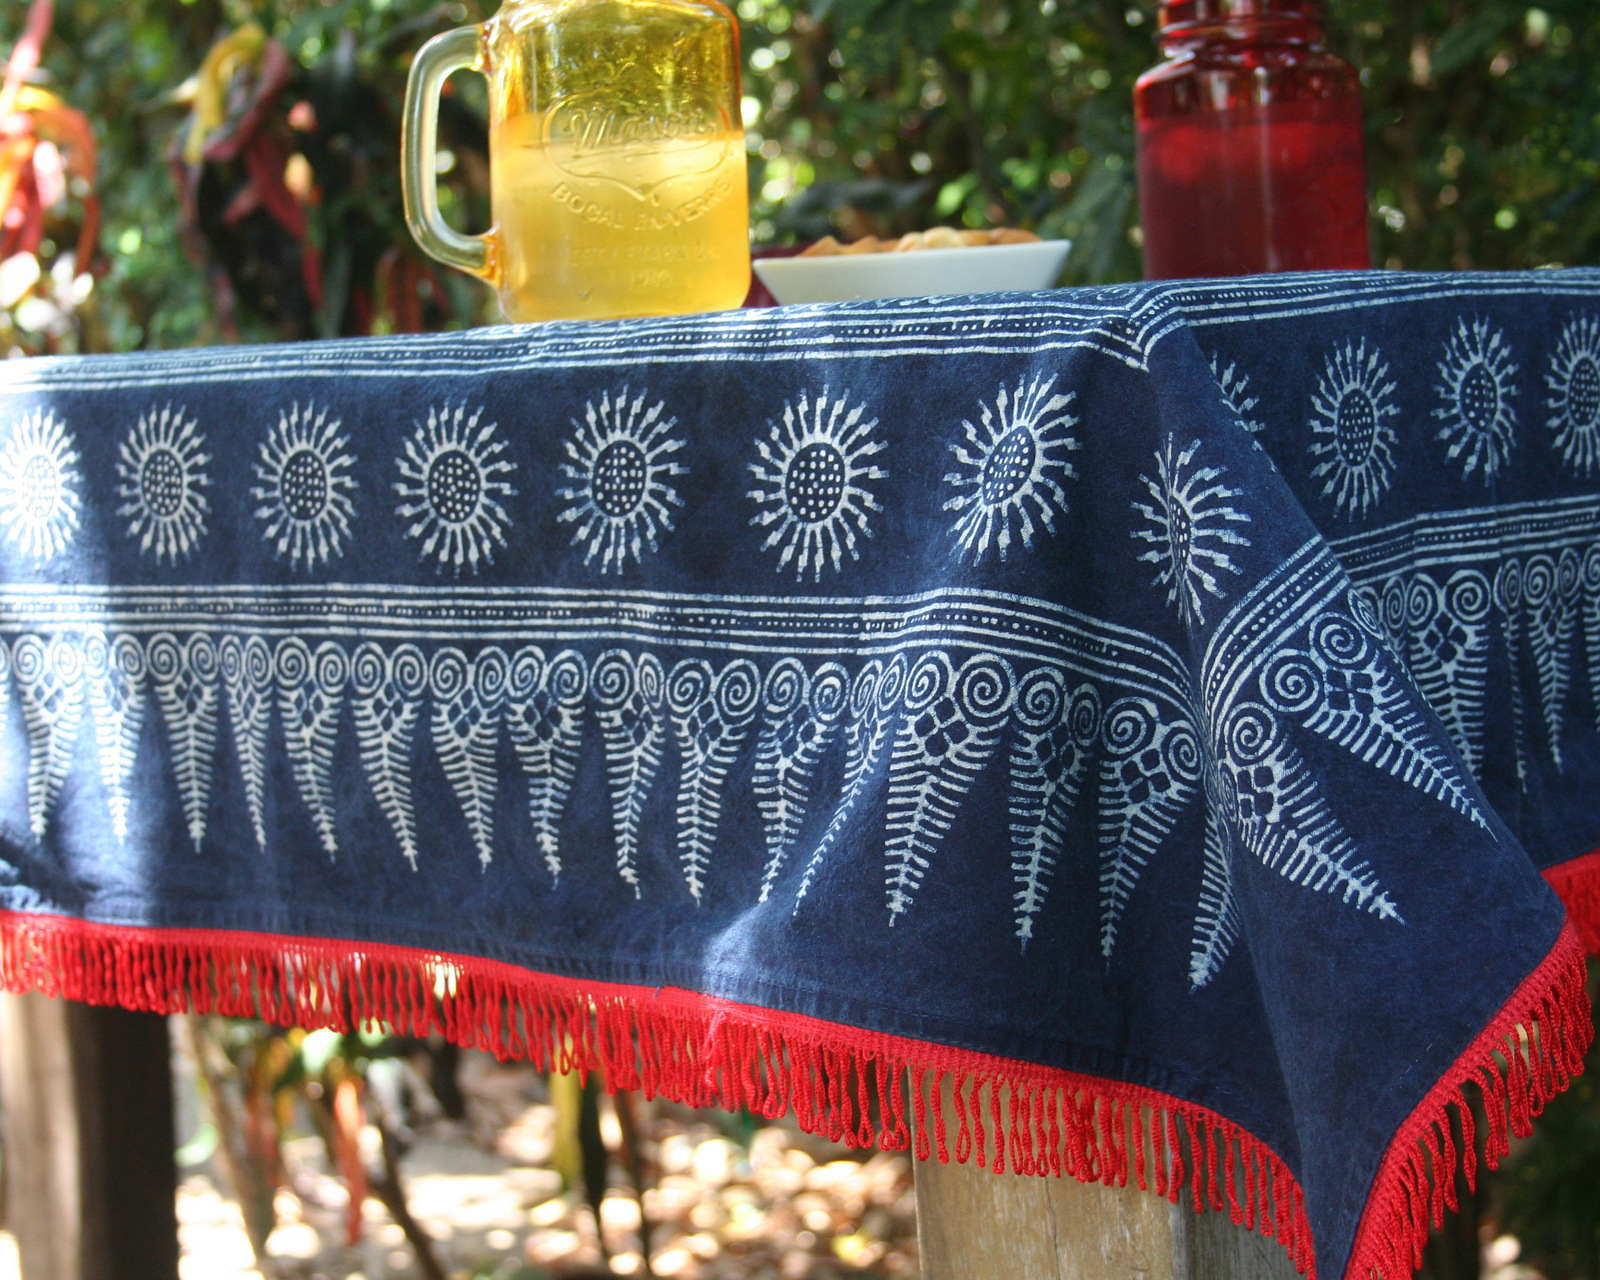 Indigo batik picnic throw or tablecloth with red trim